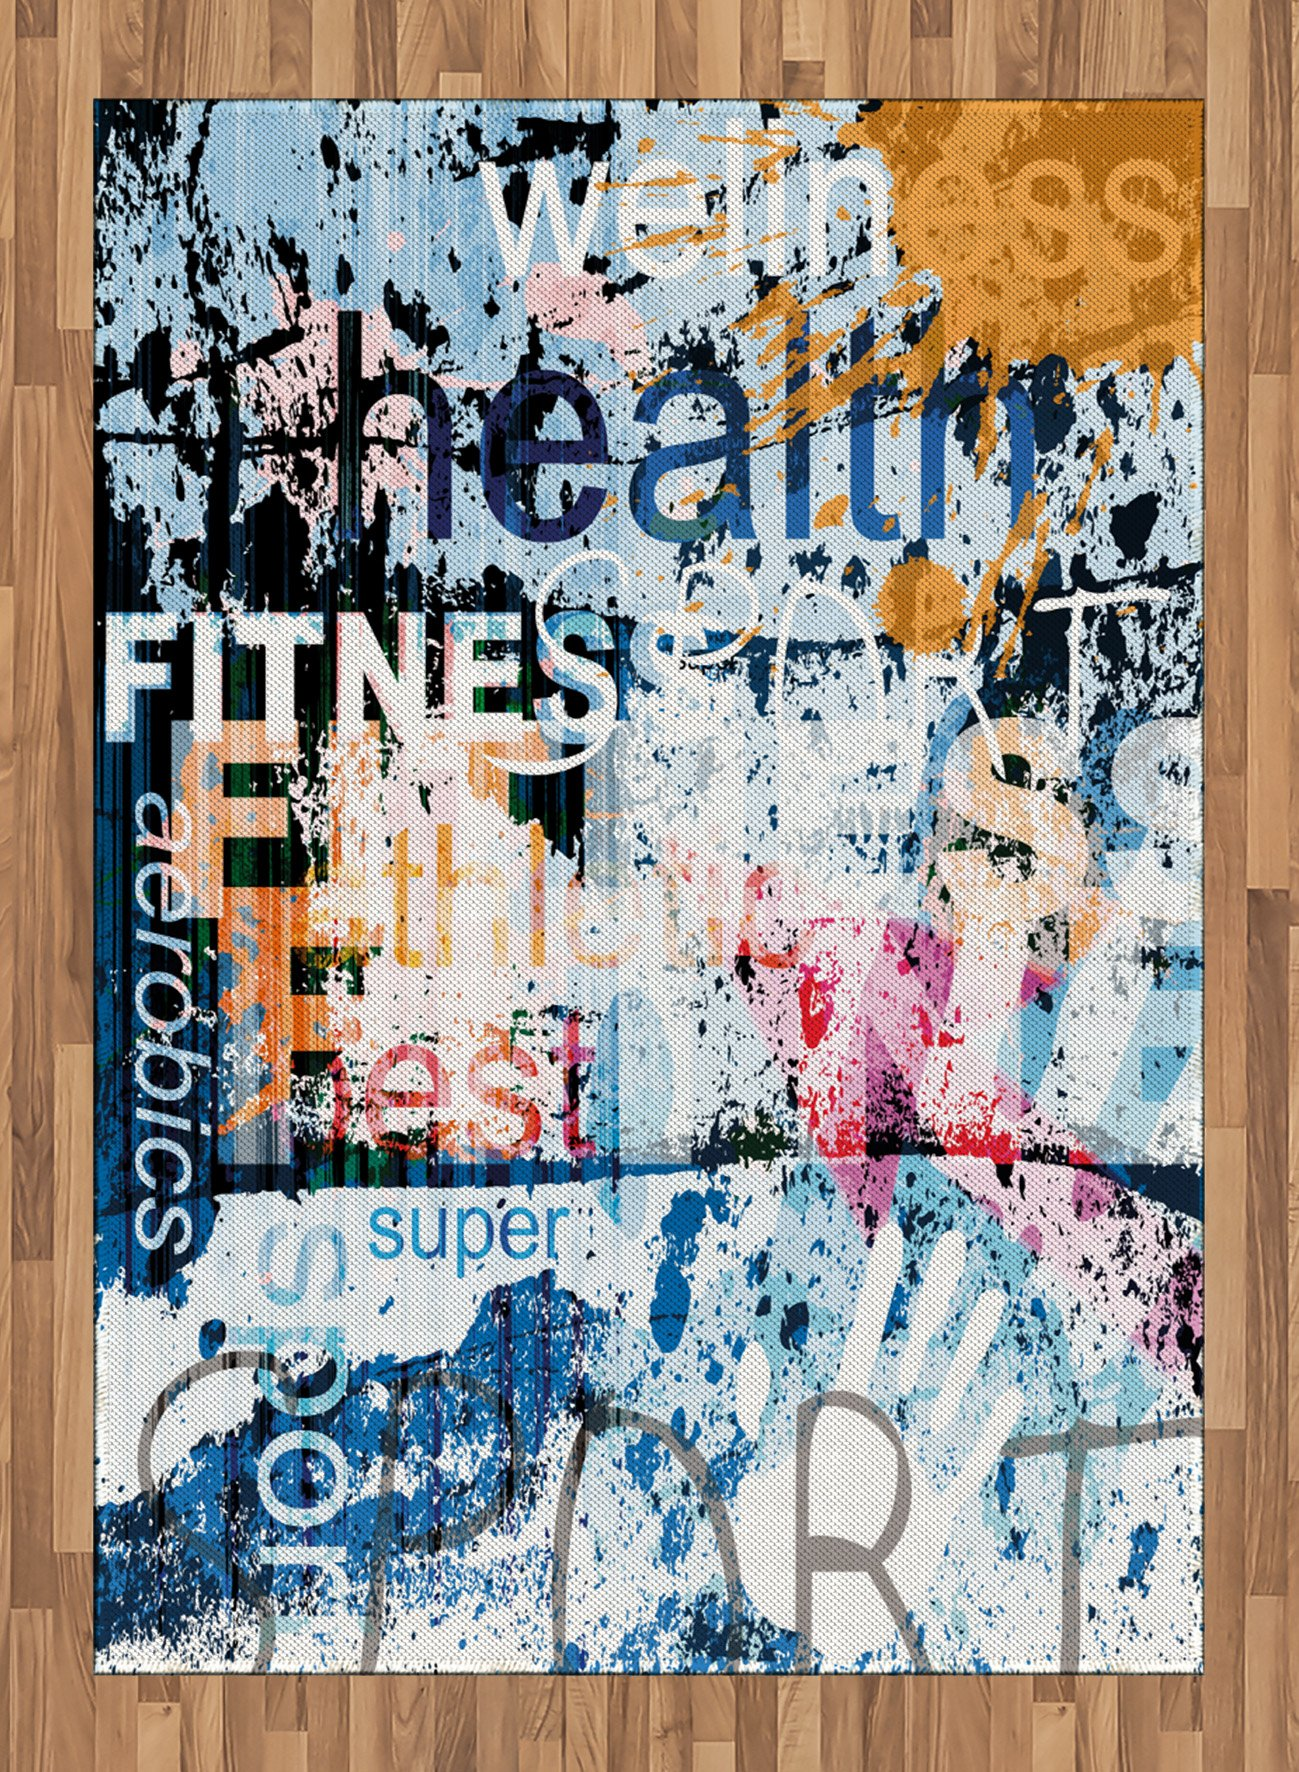 Fitness Area Rug by Ambesonne, Health Wellness Aerobics Sports Words Collection on Grunge Vintage Style Backdrop, Flat Woven Accent Rug for Living Room Bedroom Dining Room, 5.2 x 7.5 FT, Multicolor